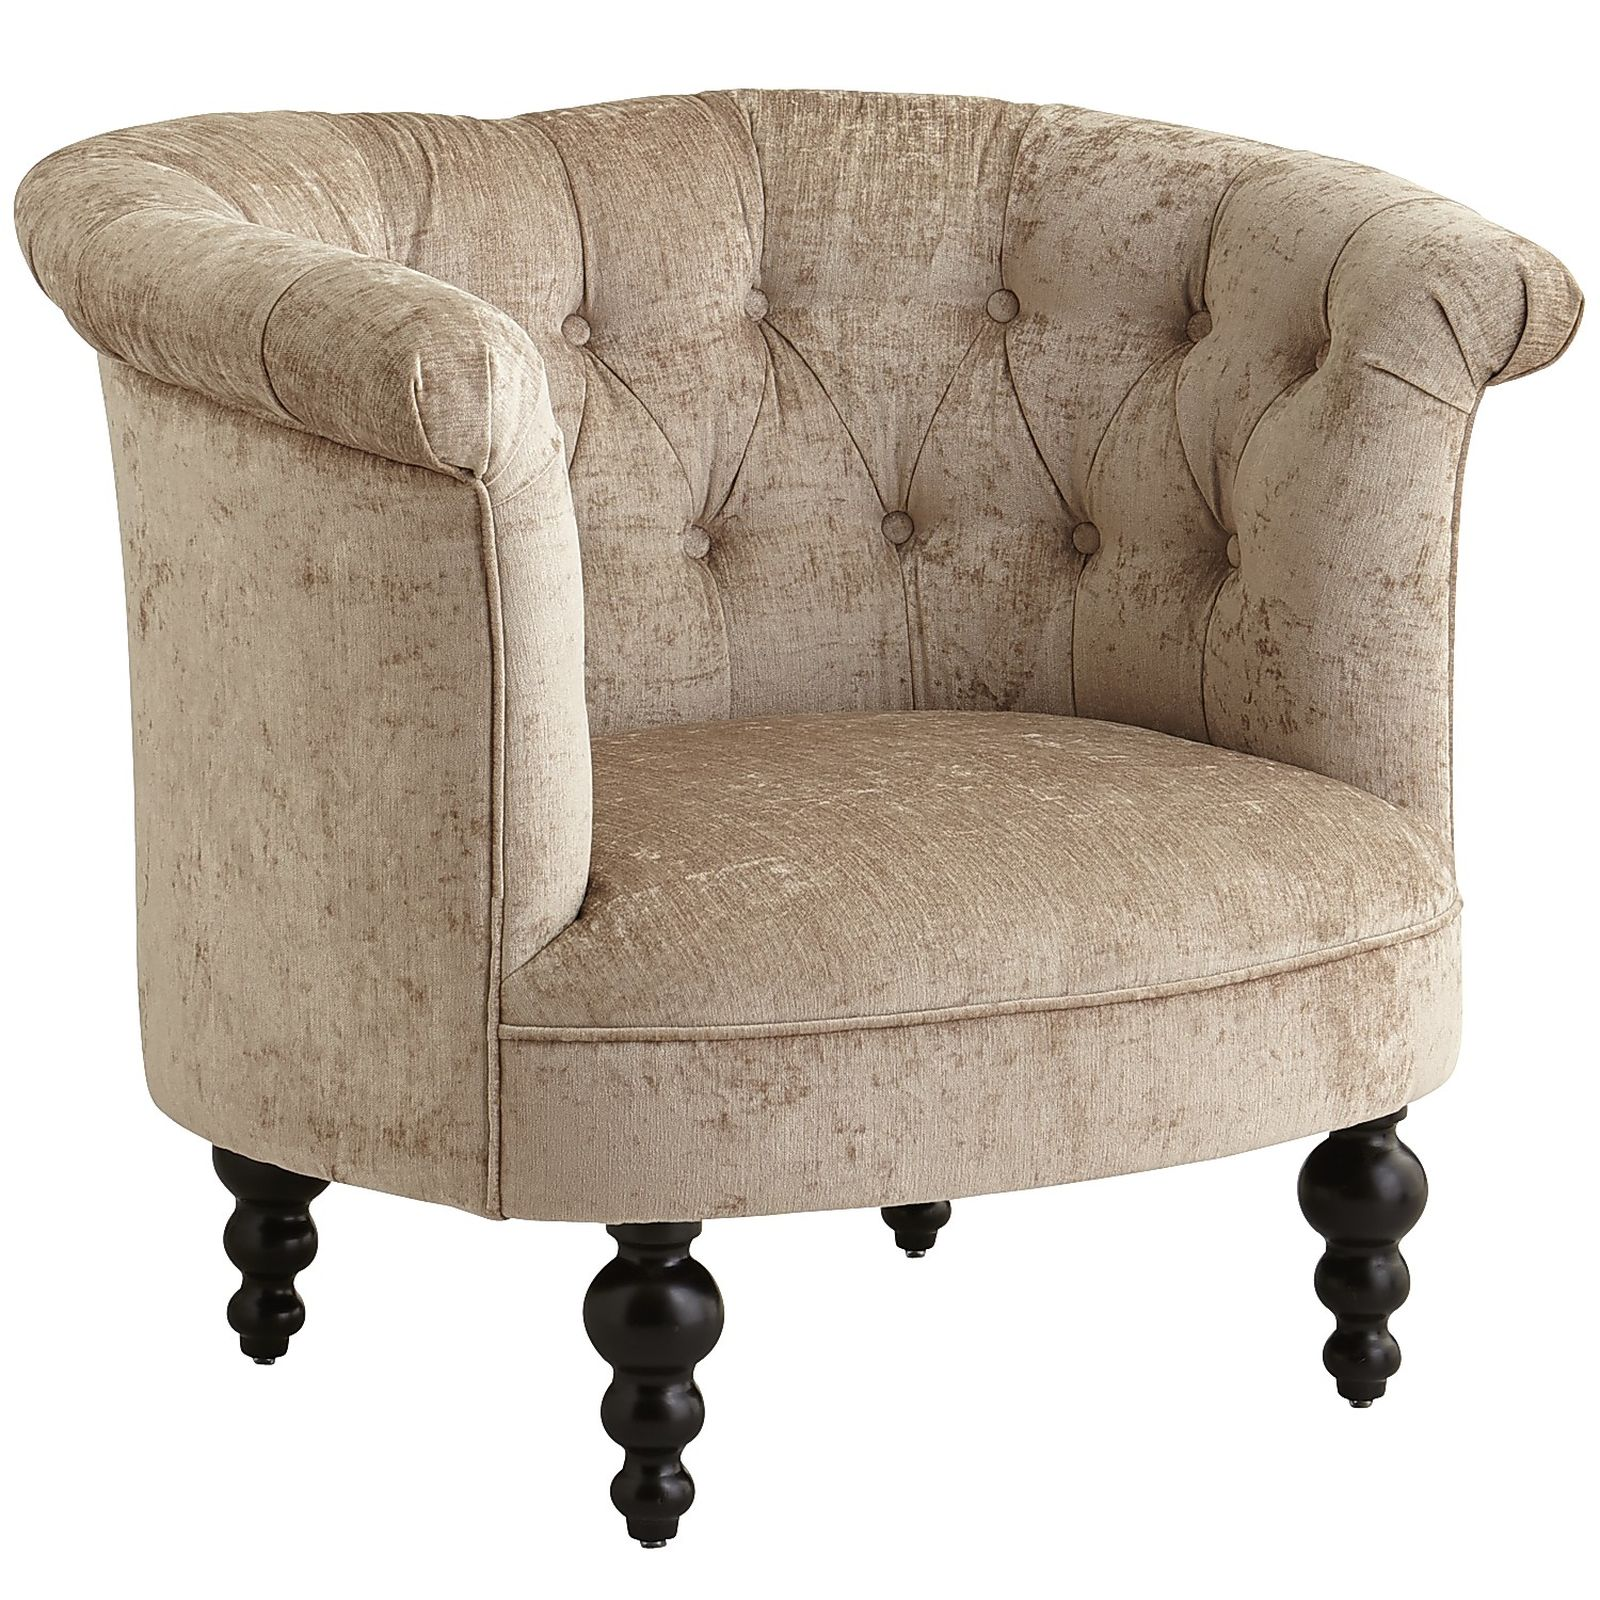 Excellent accent chair for home furniture ideas with accent chairs with arms and accent chairs for living room